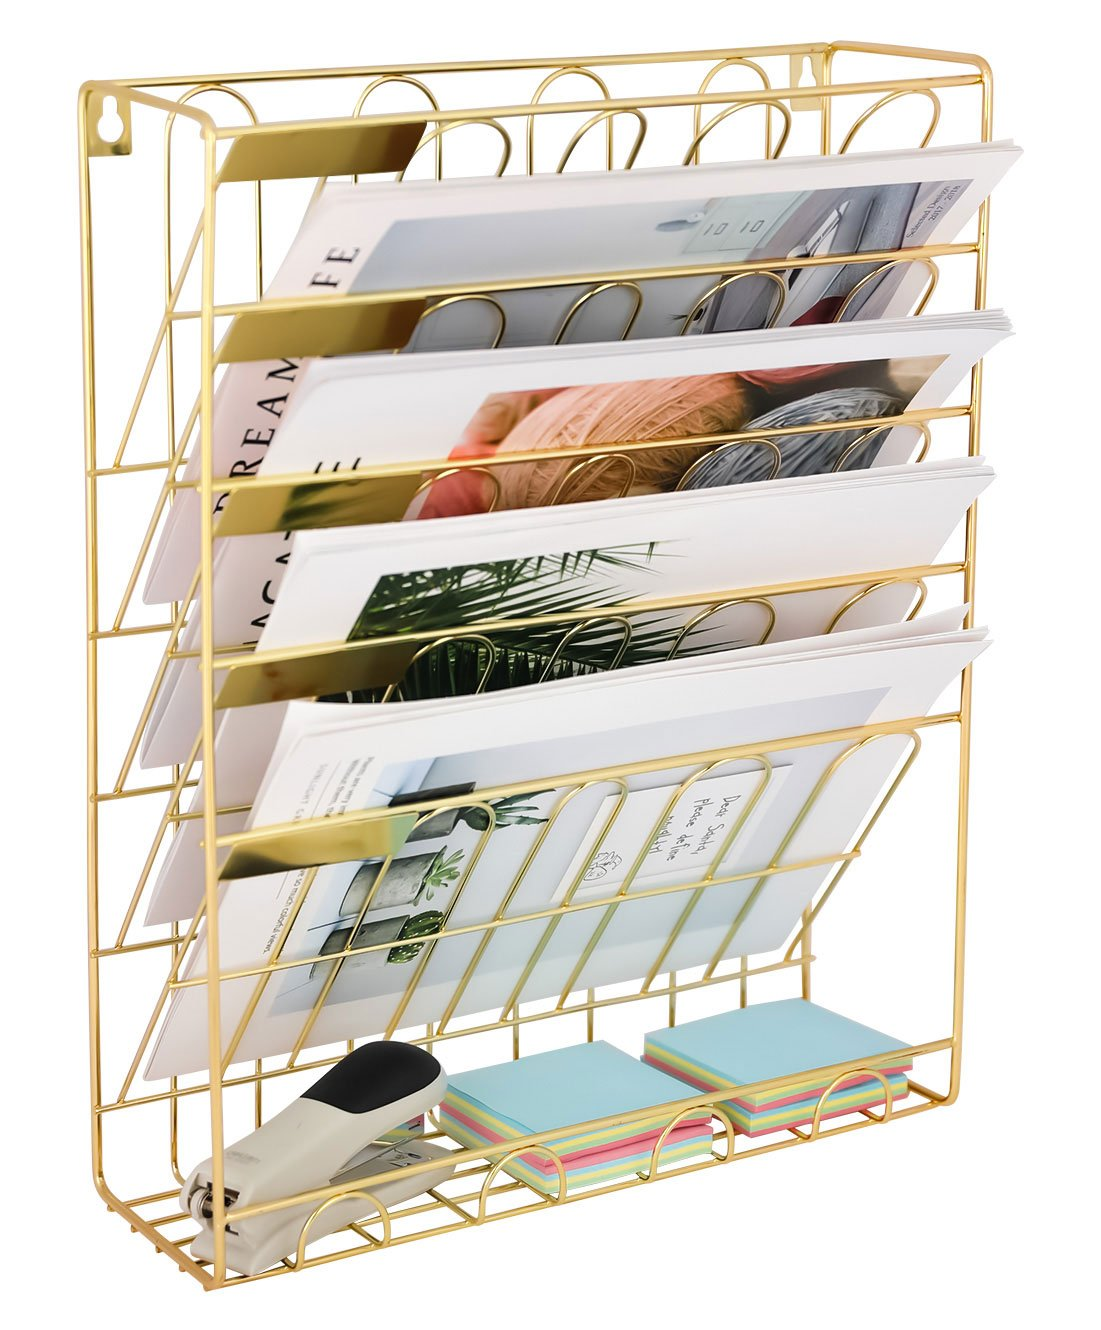 Superbpag Hanging Wall File Organizer, 5 Slot Wire Metal Wall Mounted Document Holder for Office Home, Gold York FJ5CBG